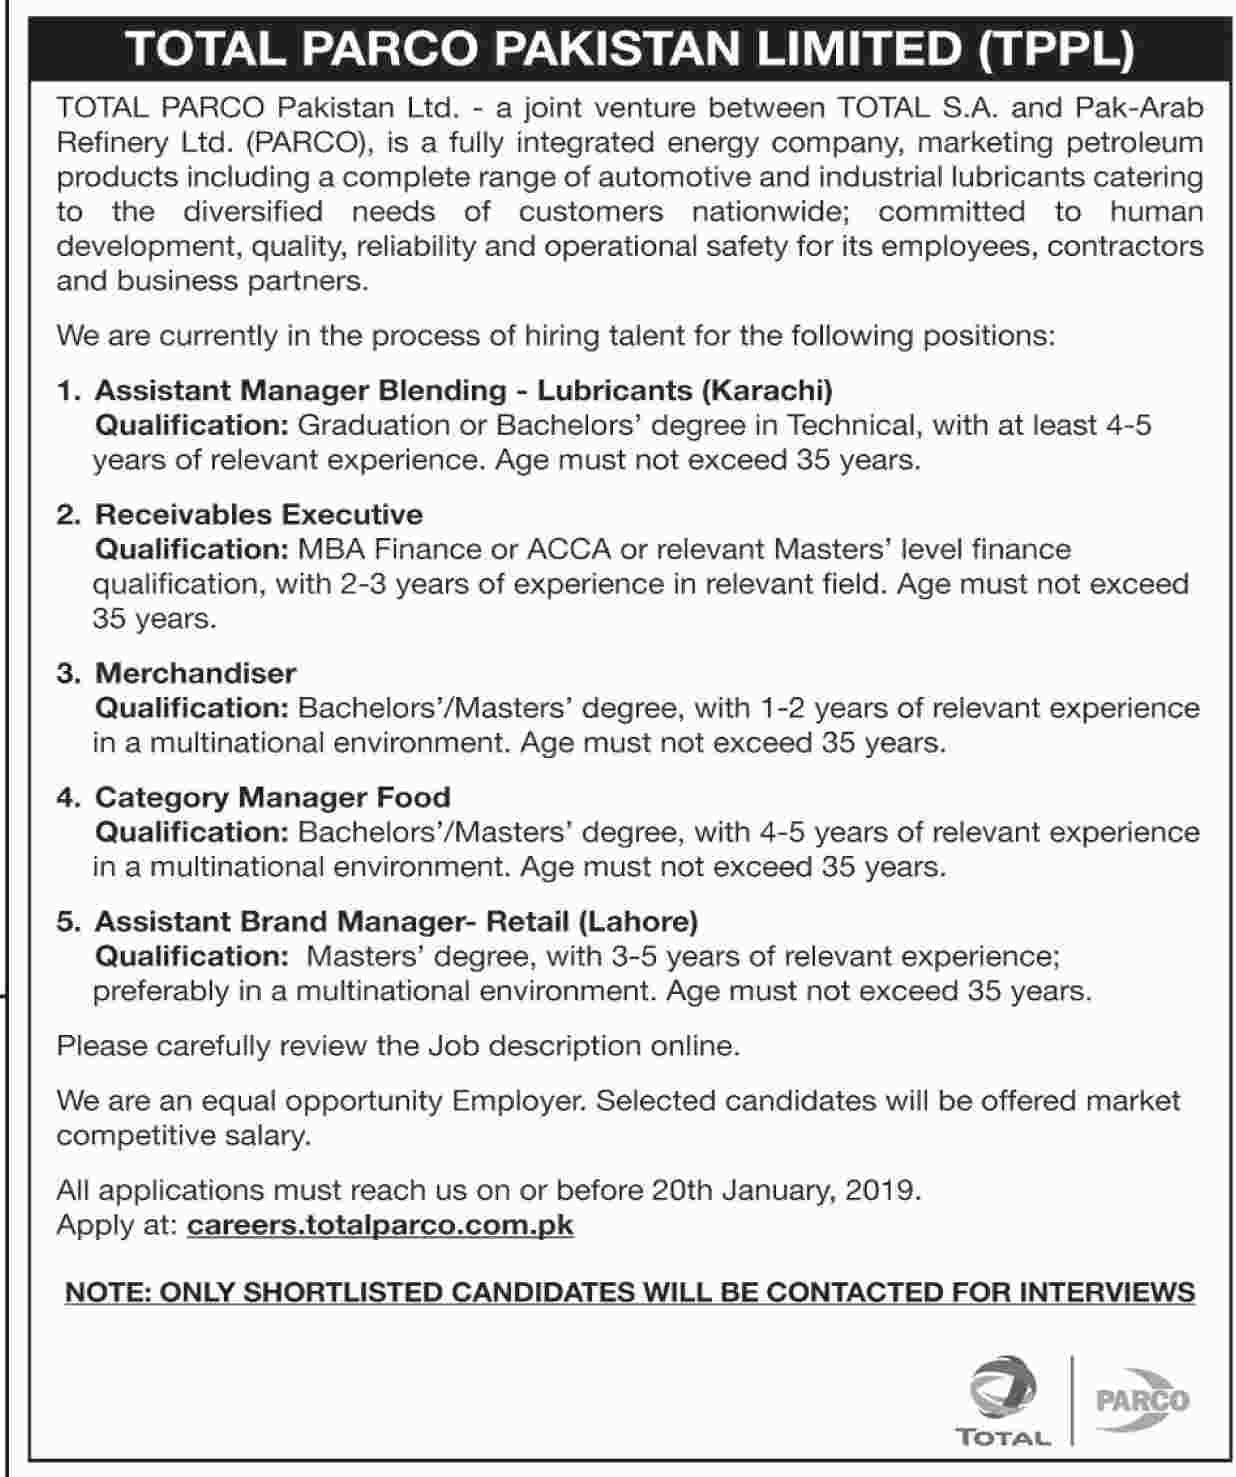 Total Parco Pakistan Ltd TPPL Jobs 2019 Application Form | www.careers.totalparco.com.pk